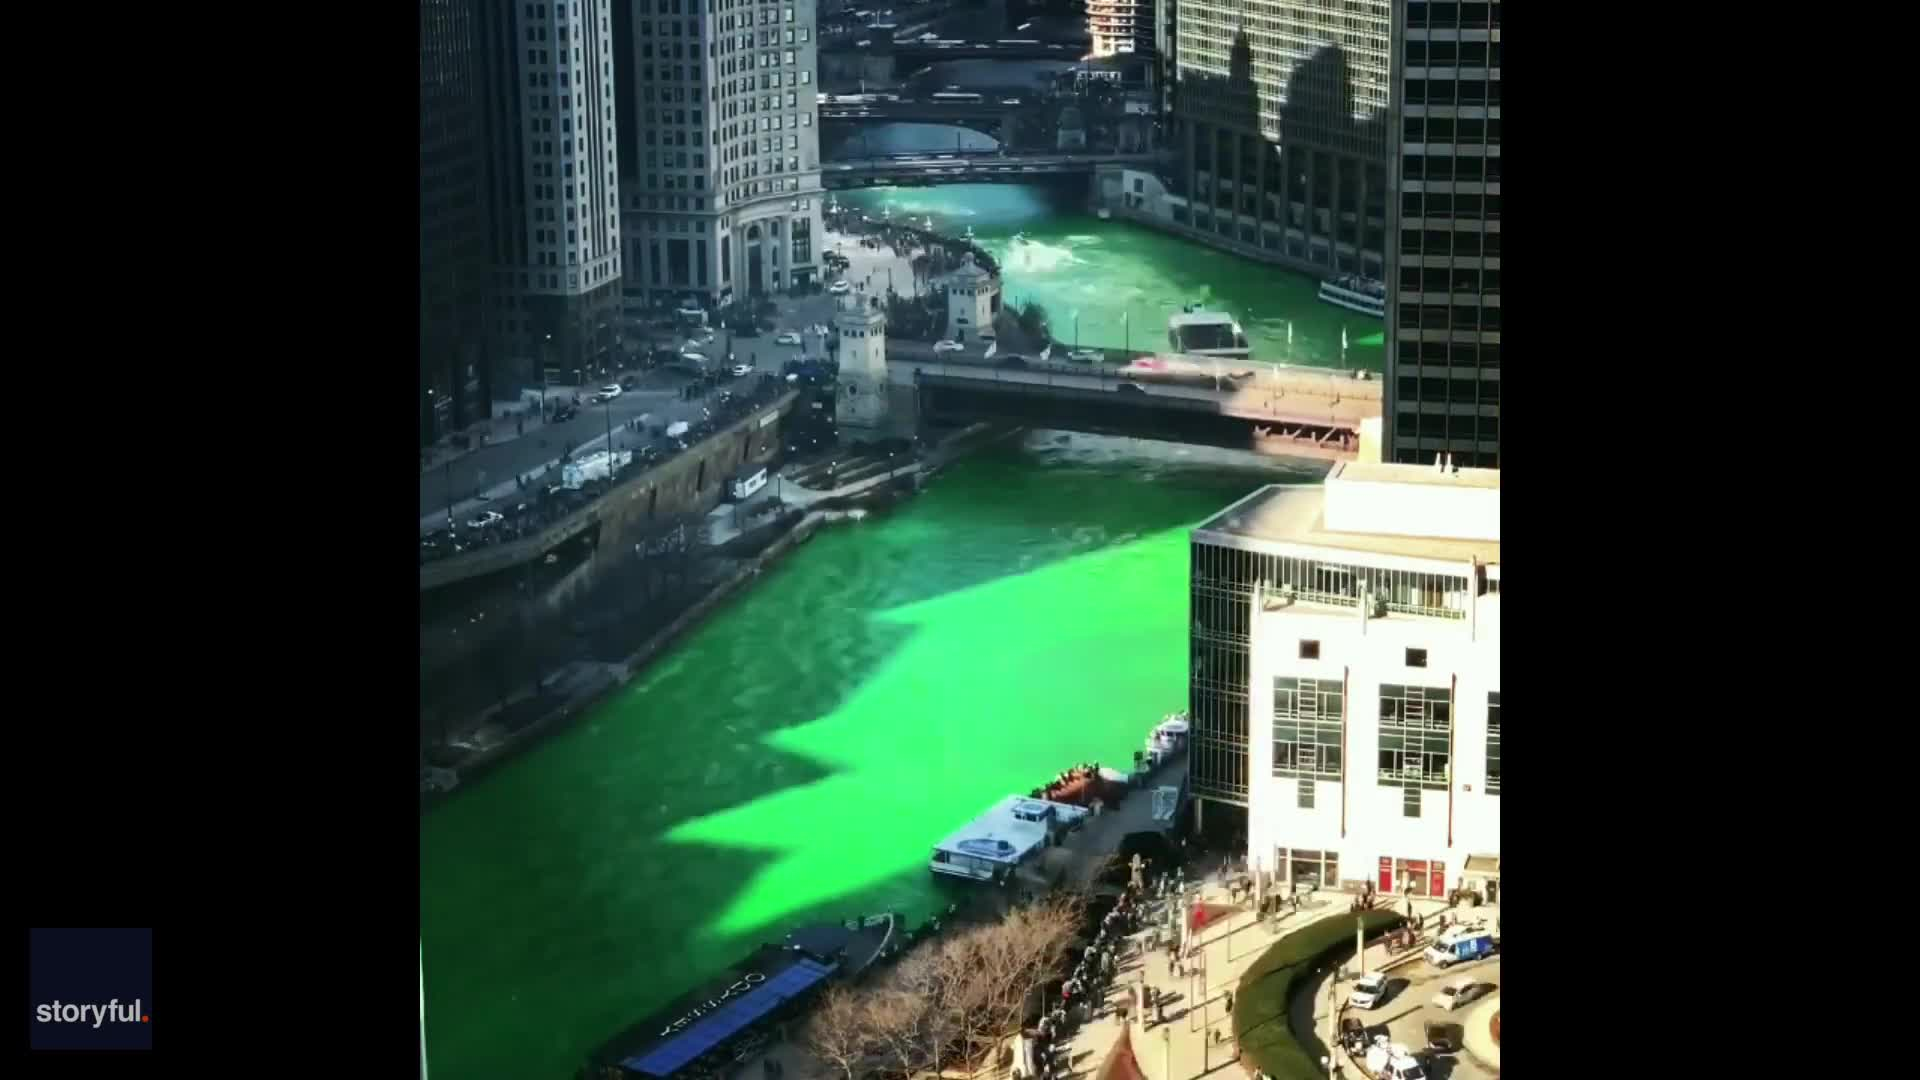 National News - Chicago River Dyed Green For St. Patrick's Day